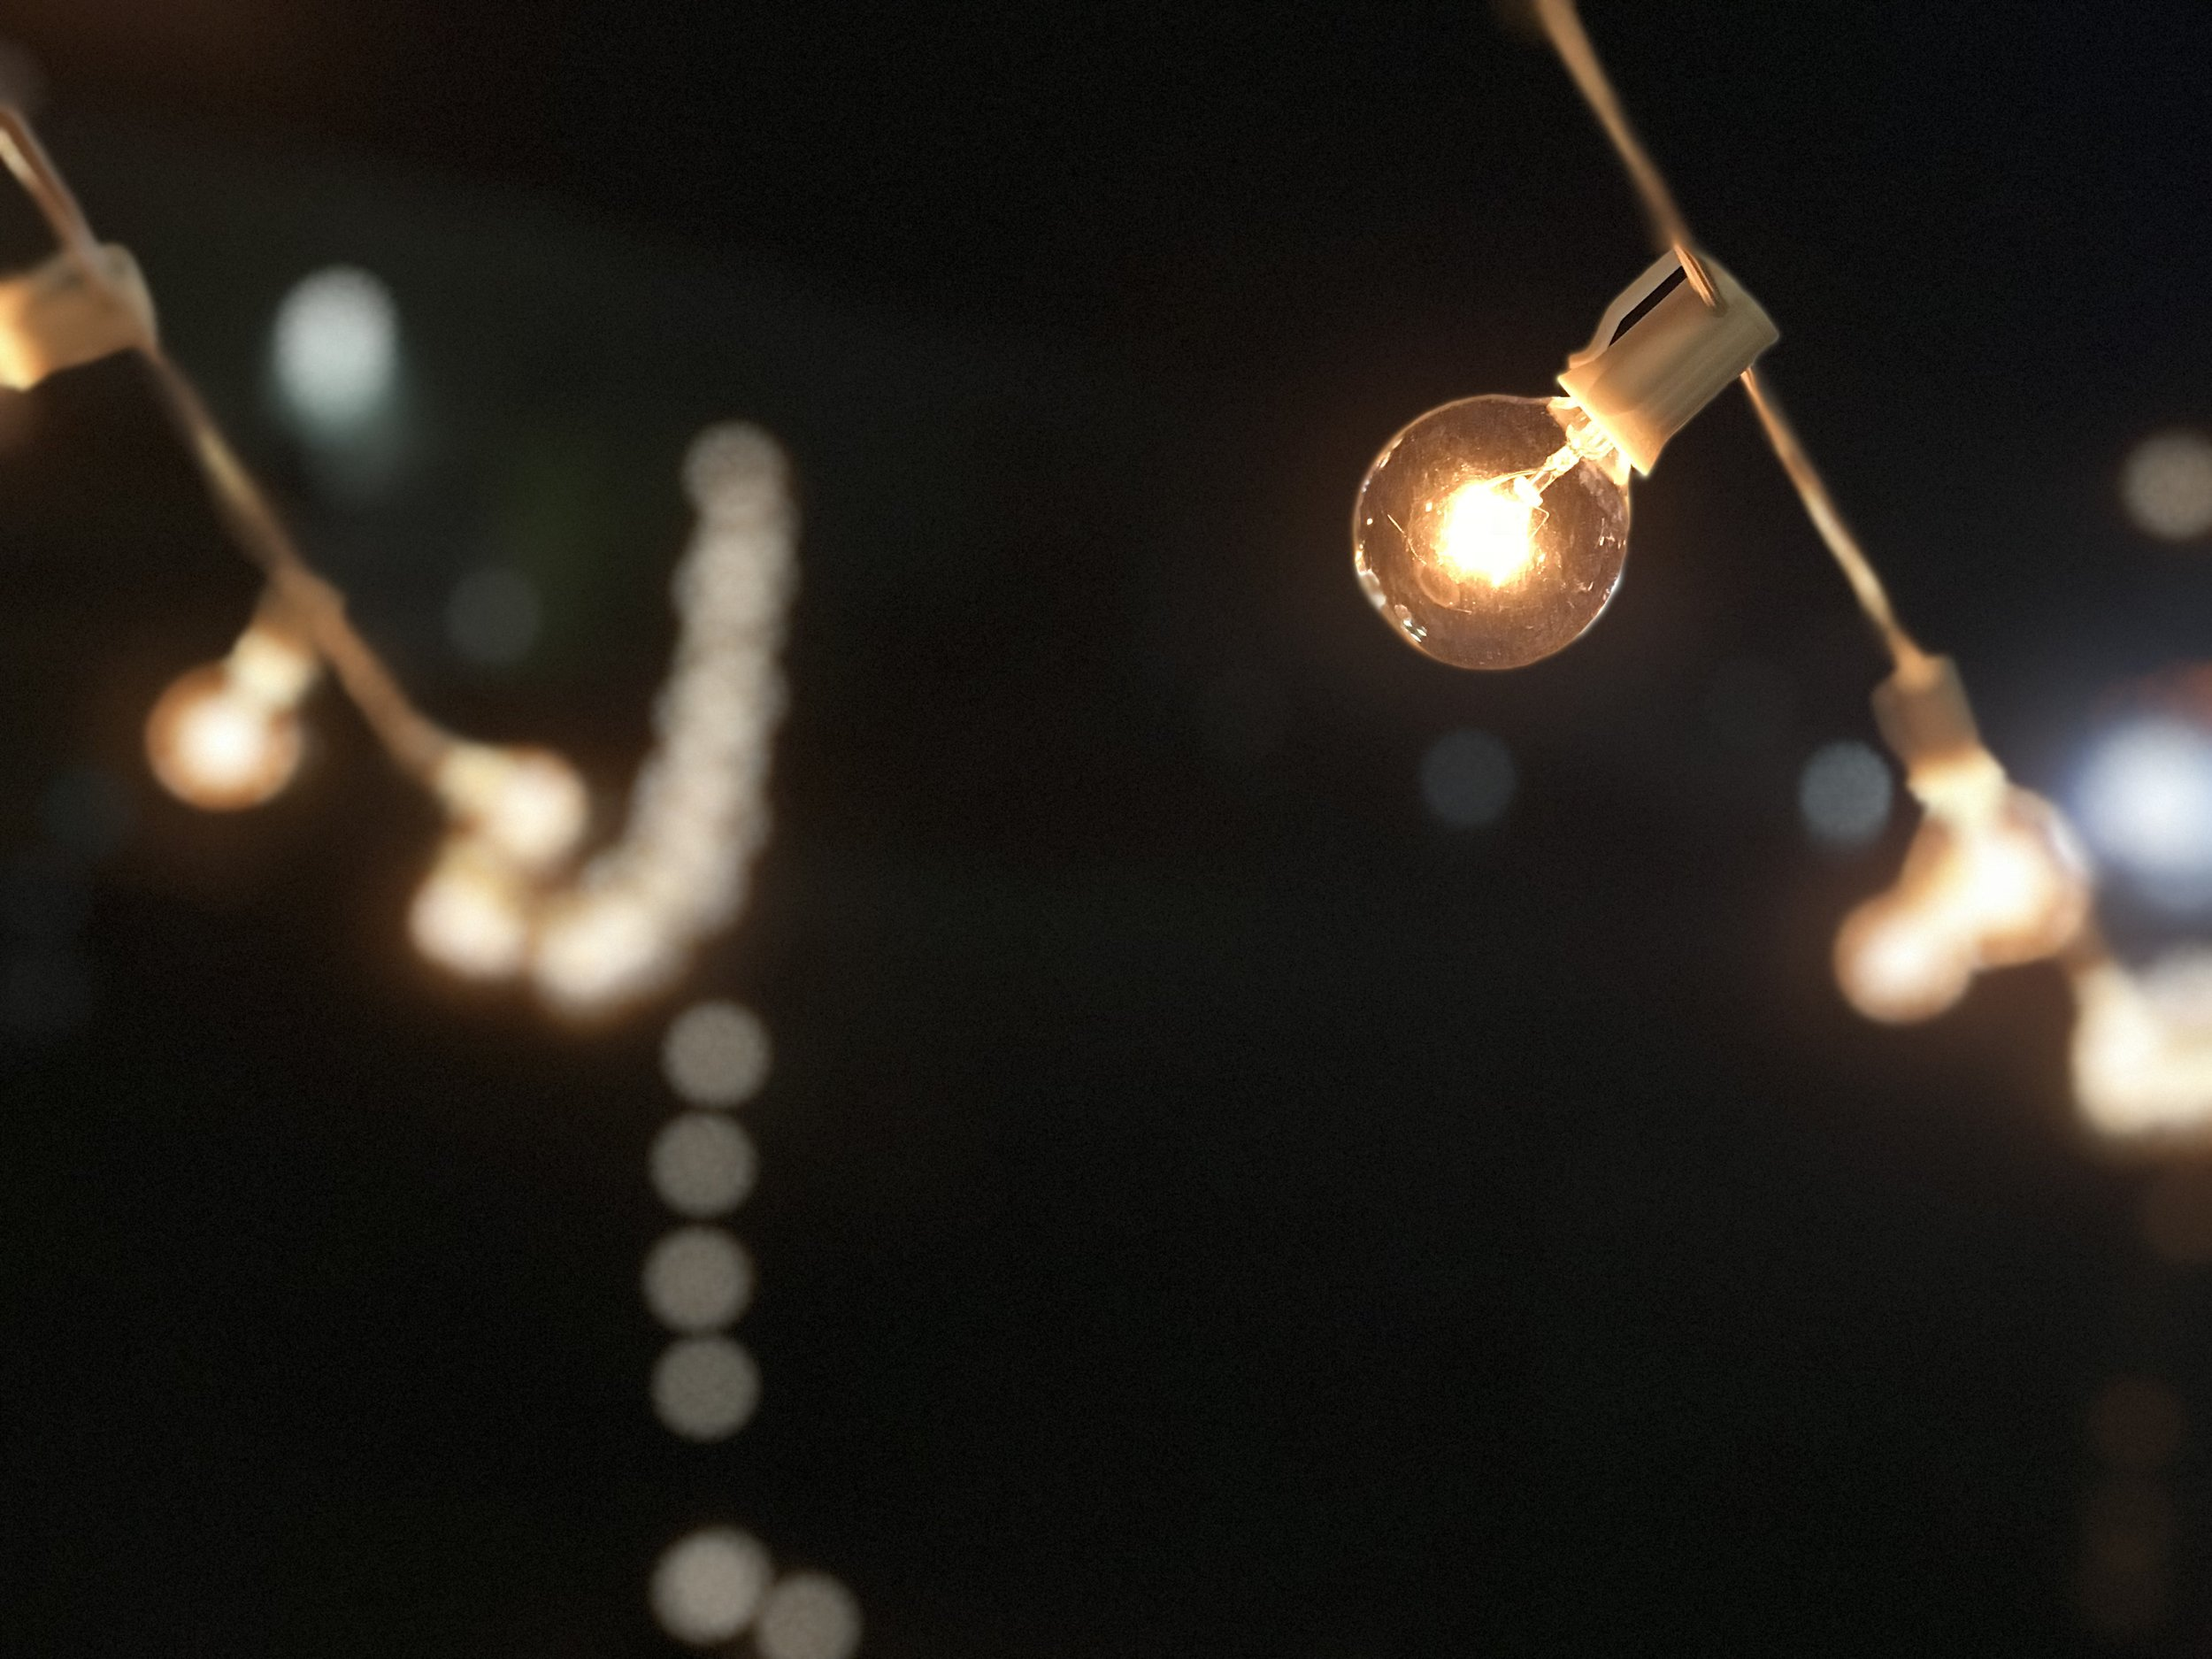 Bistro Lighting - Seen at French bistros and cafes, and sometimes referred to as market string lights, these globe string lights create a romantic atmosphere perfect for any venue or occasion.